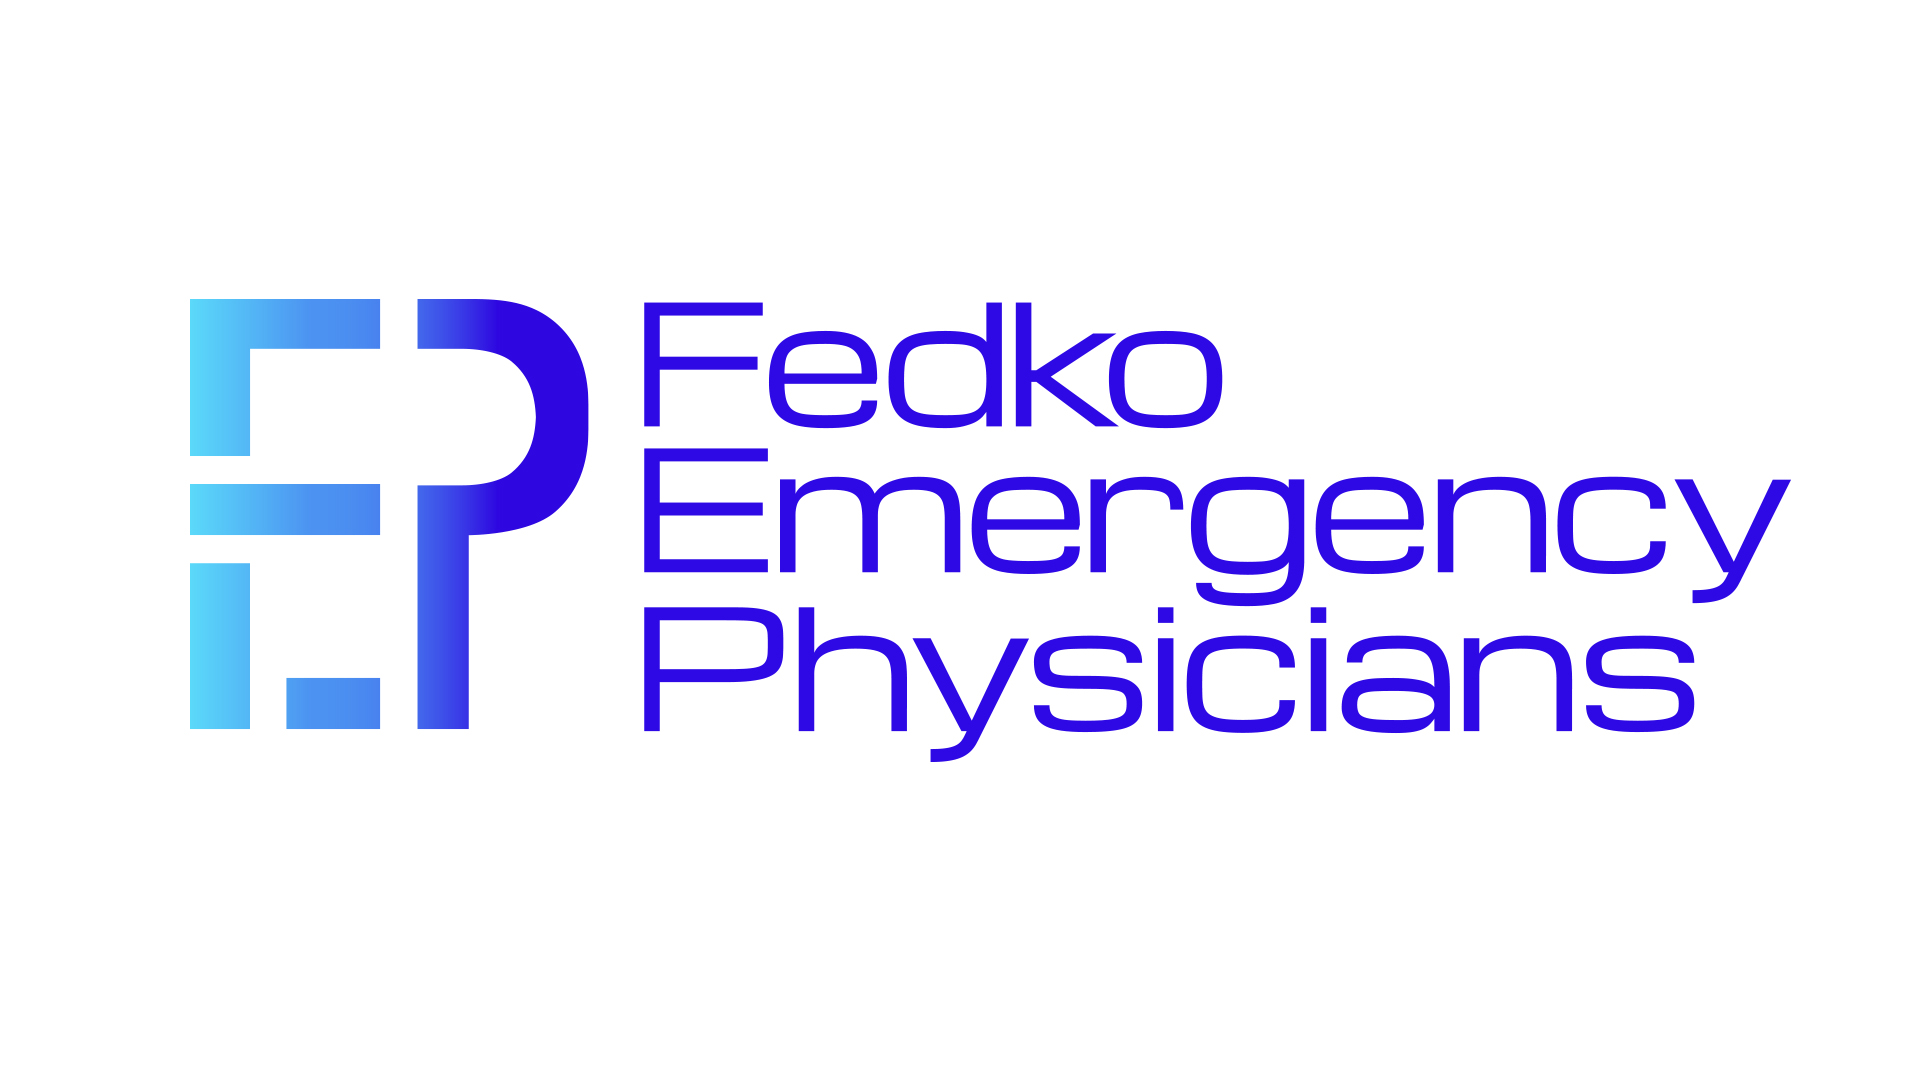 Fedko Emergency Physicians